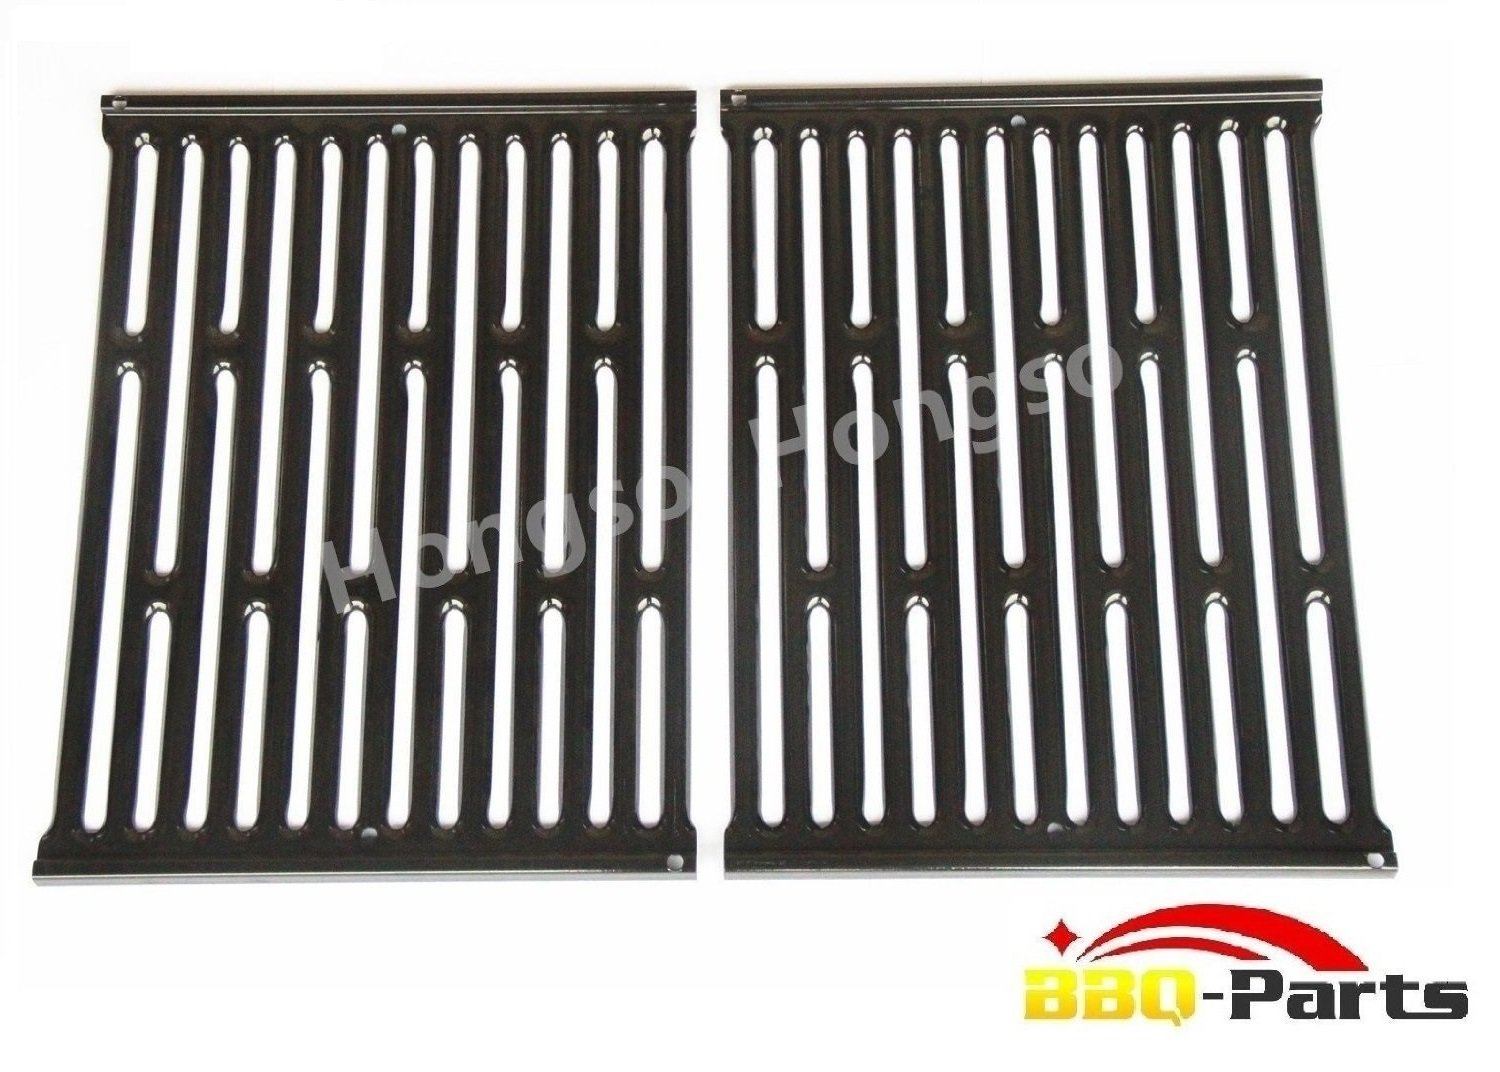 pcg523 porcelain enameled grates replacement for weber. Black Bedroom Furniture Sets. Home Design Ideas